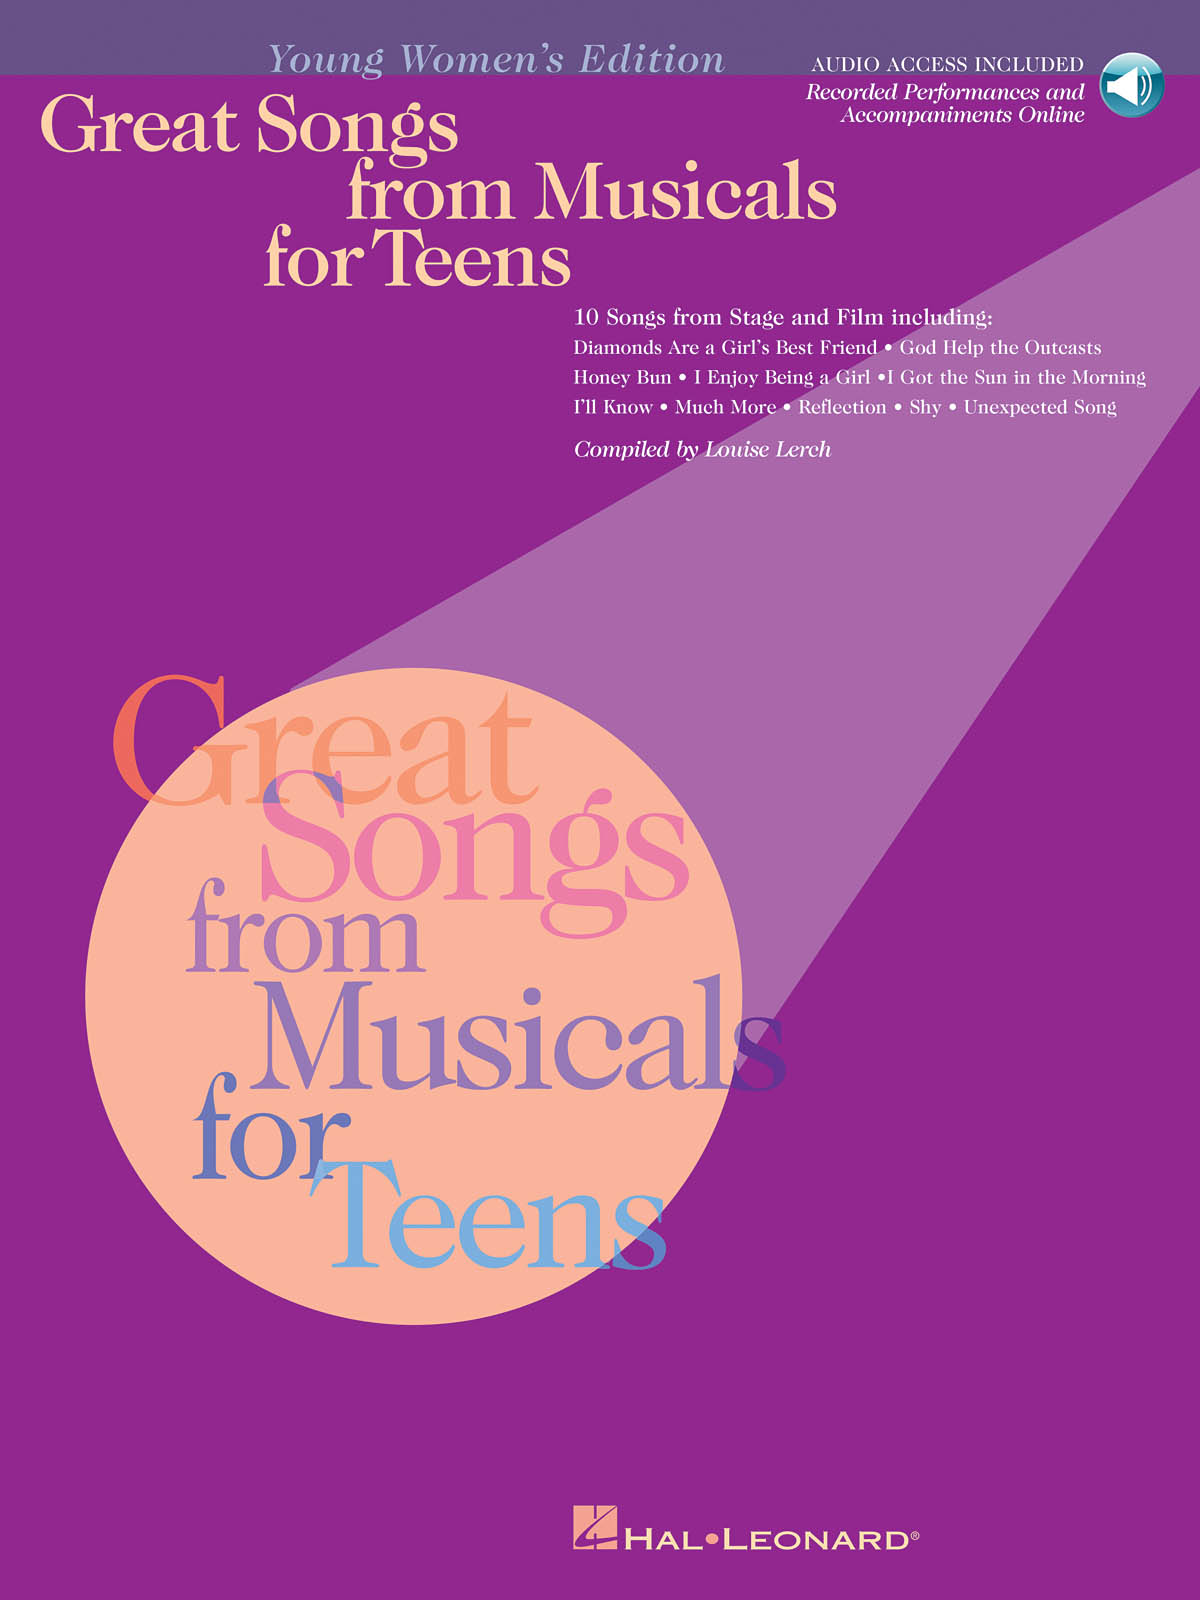 Great Songs from Musicals for Teens: Vocal Solo: Vocal Album